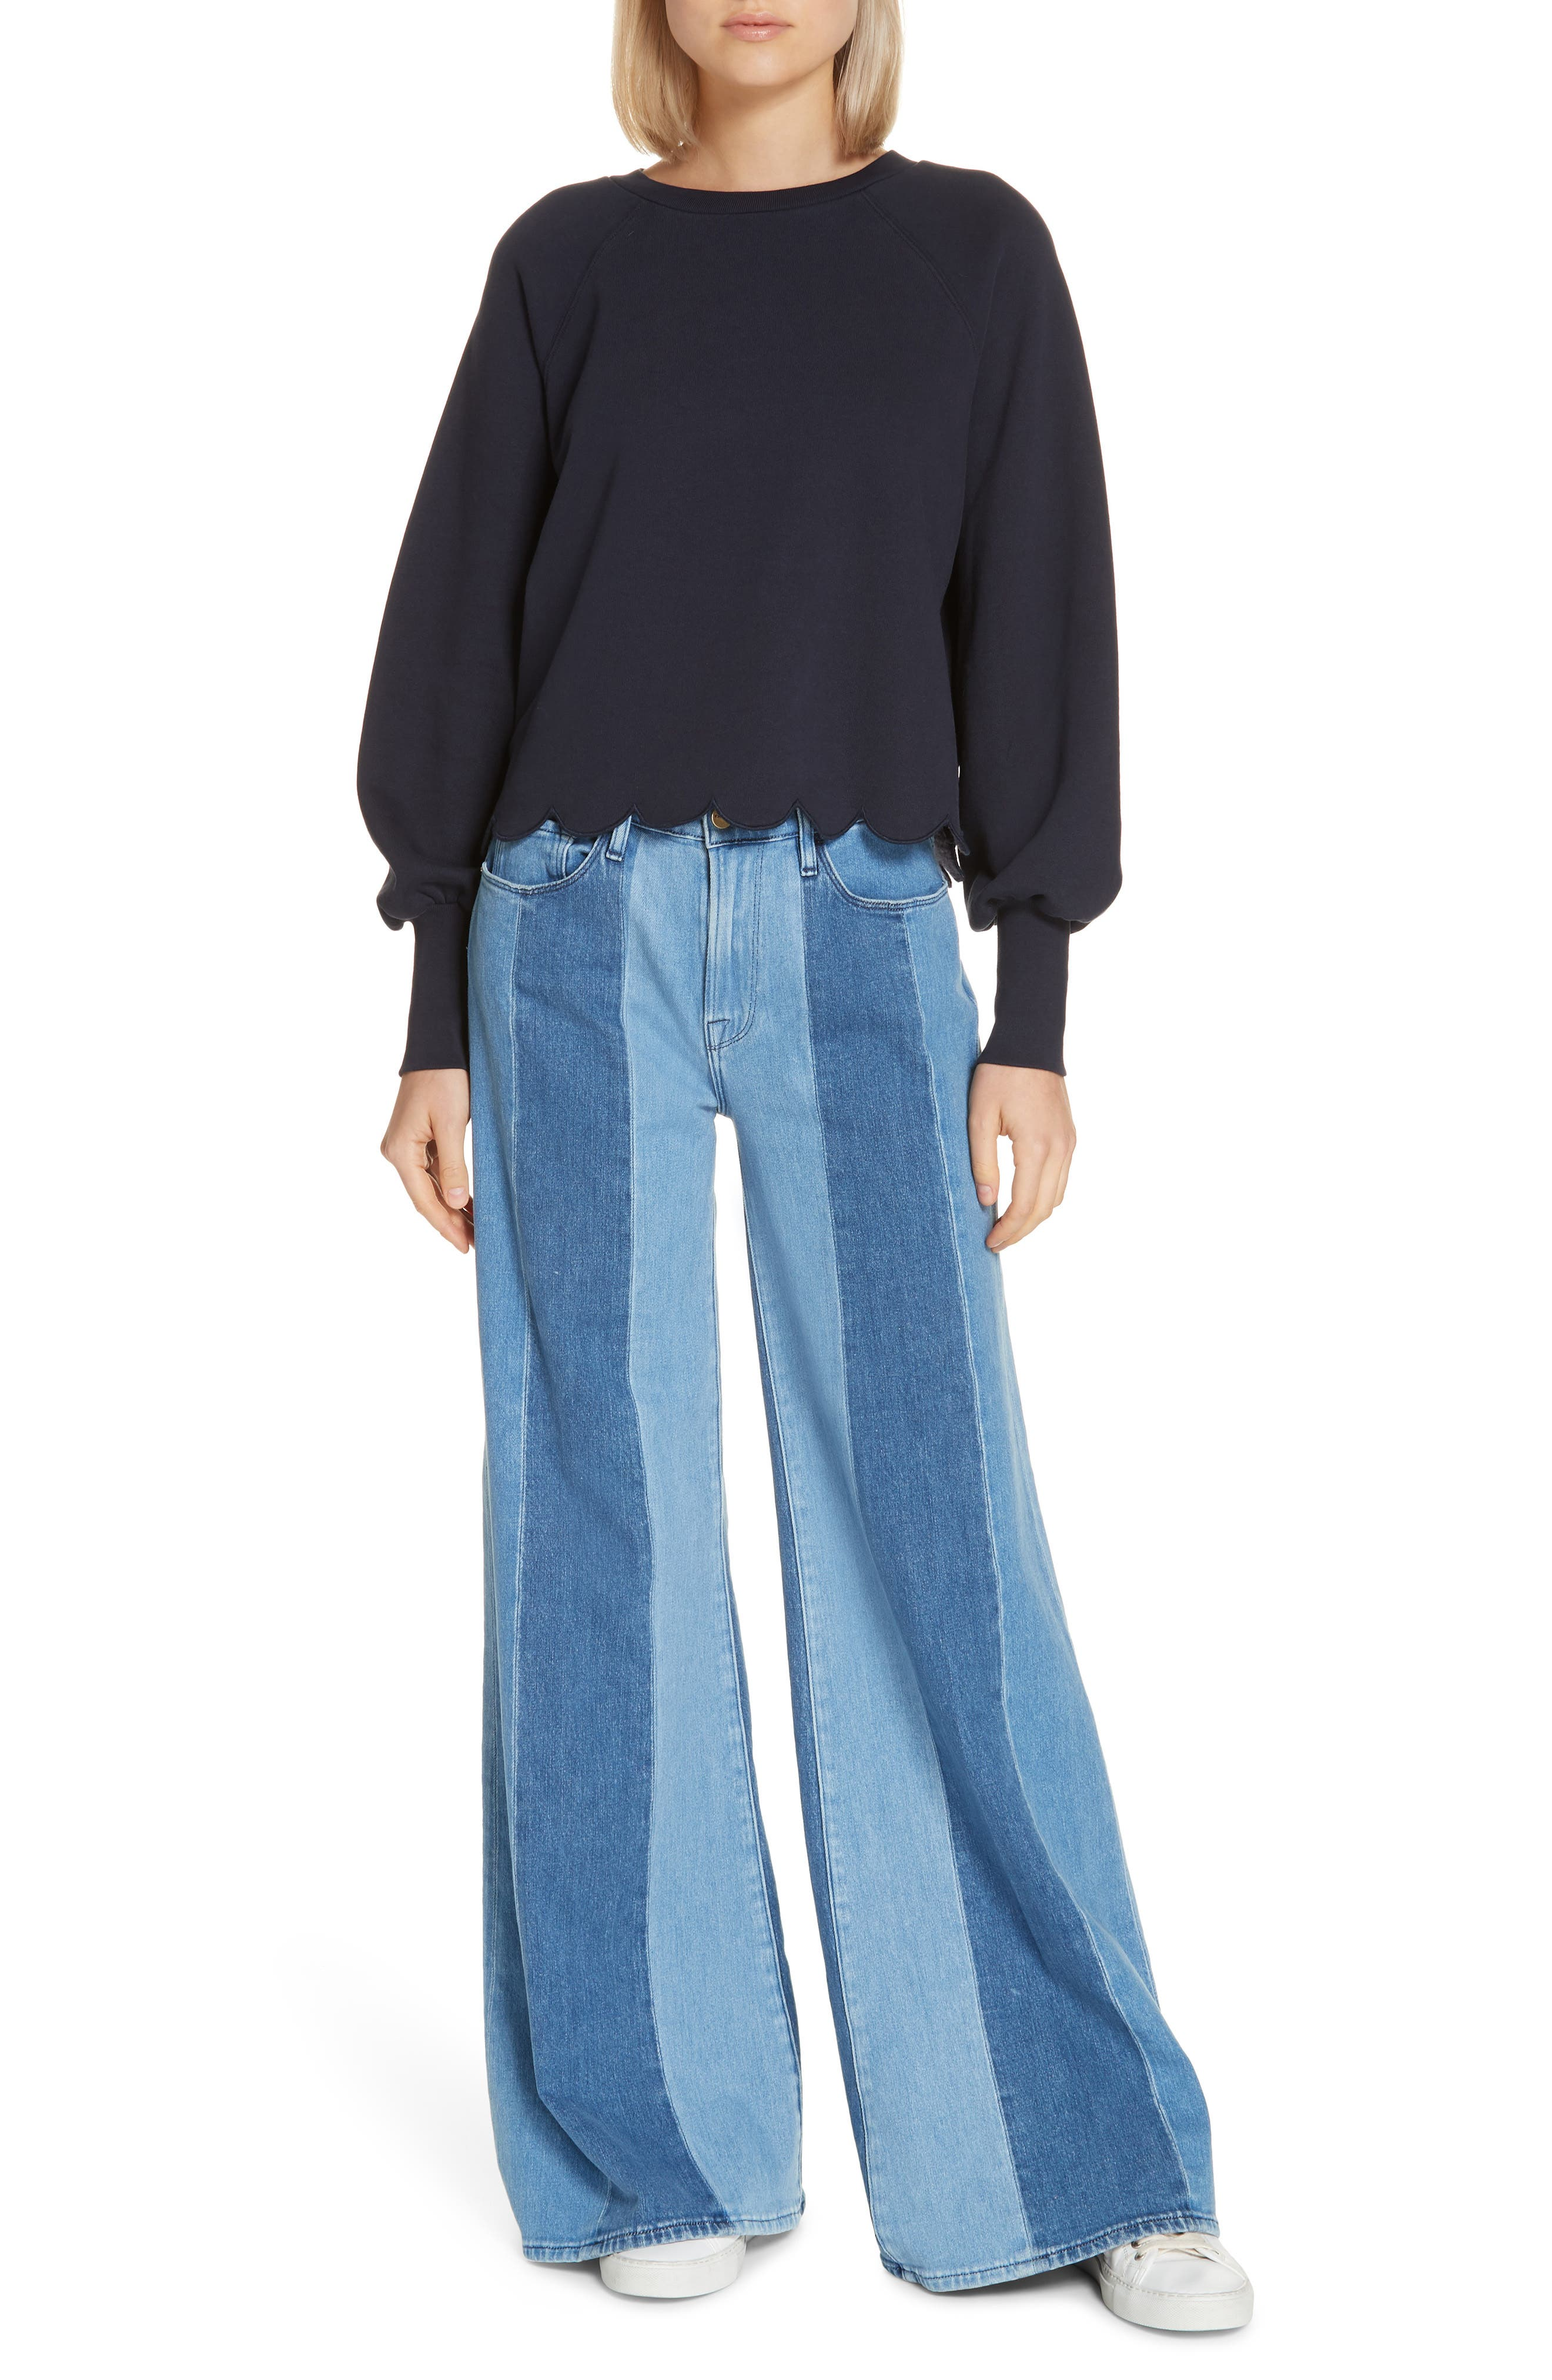 Le Palazzo Paneled Wide Leg Jeans,                             Alternate thumbnail 7, color,                             VINEYARD